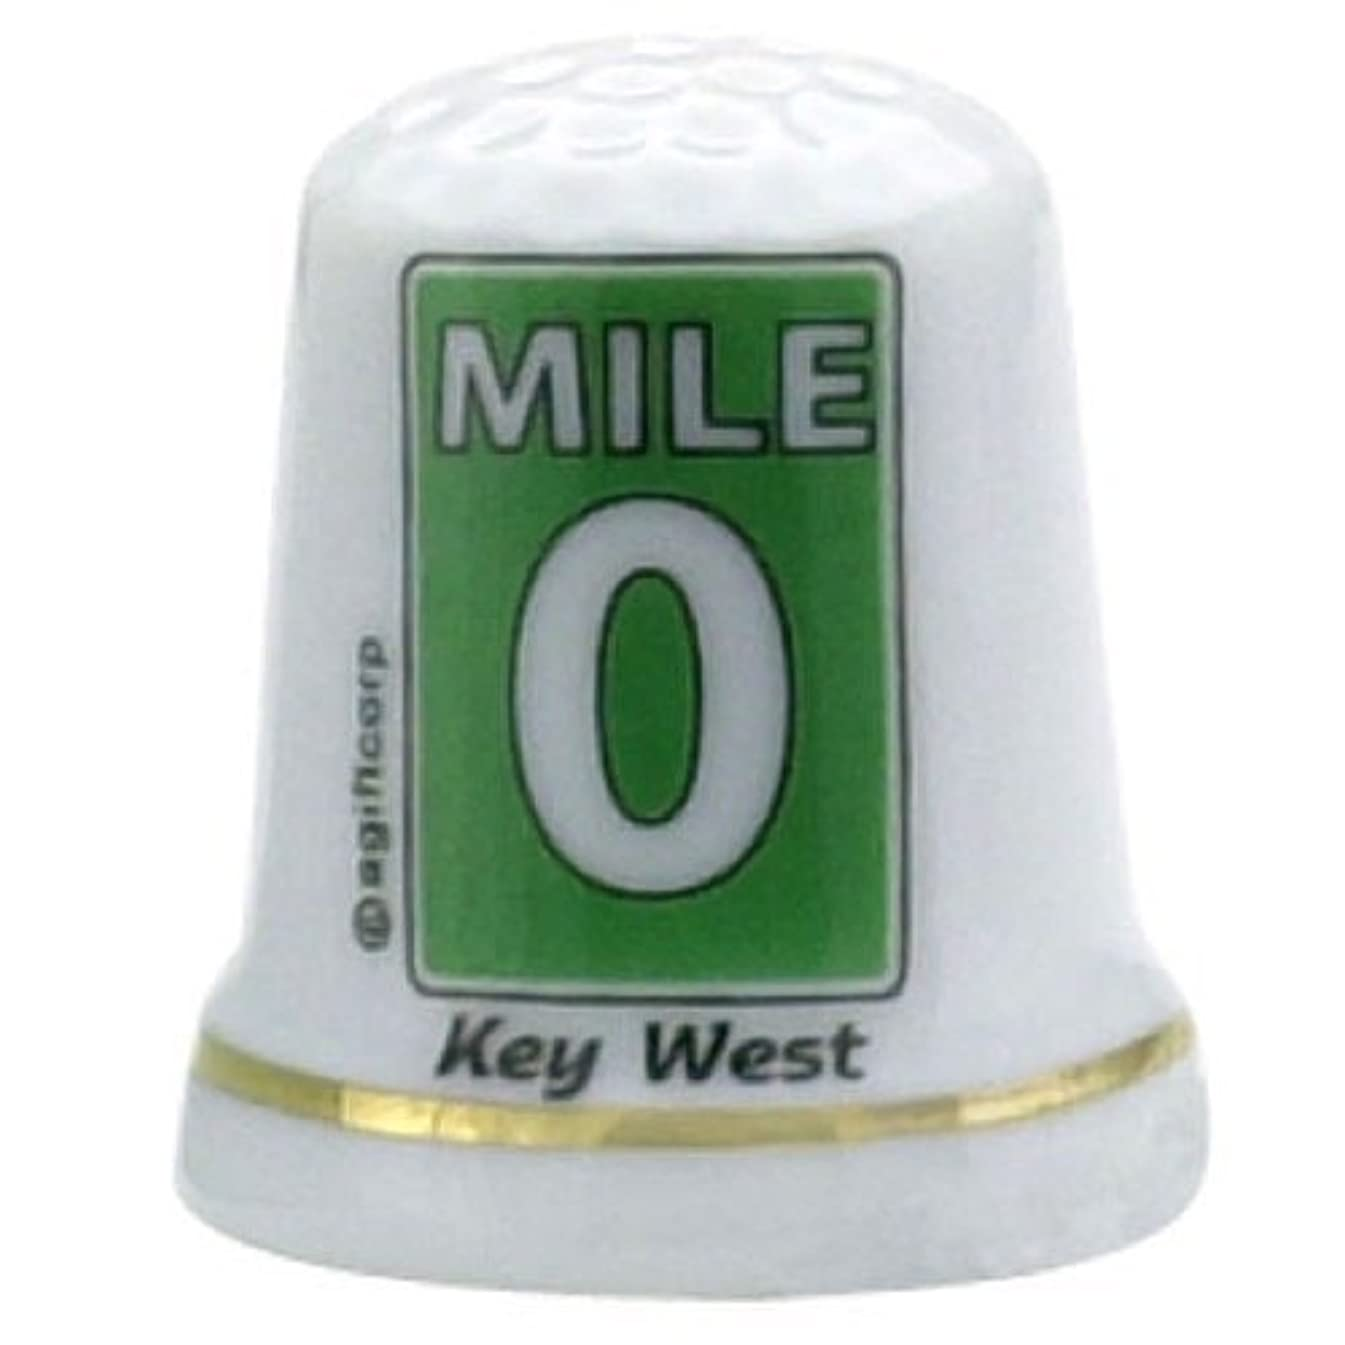 Key West Florida Mile 0 Pearl Souvenir Collectible Thimble agc